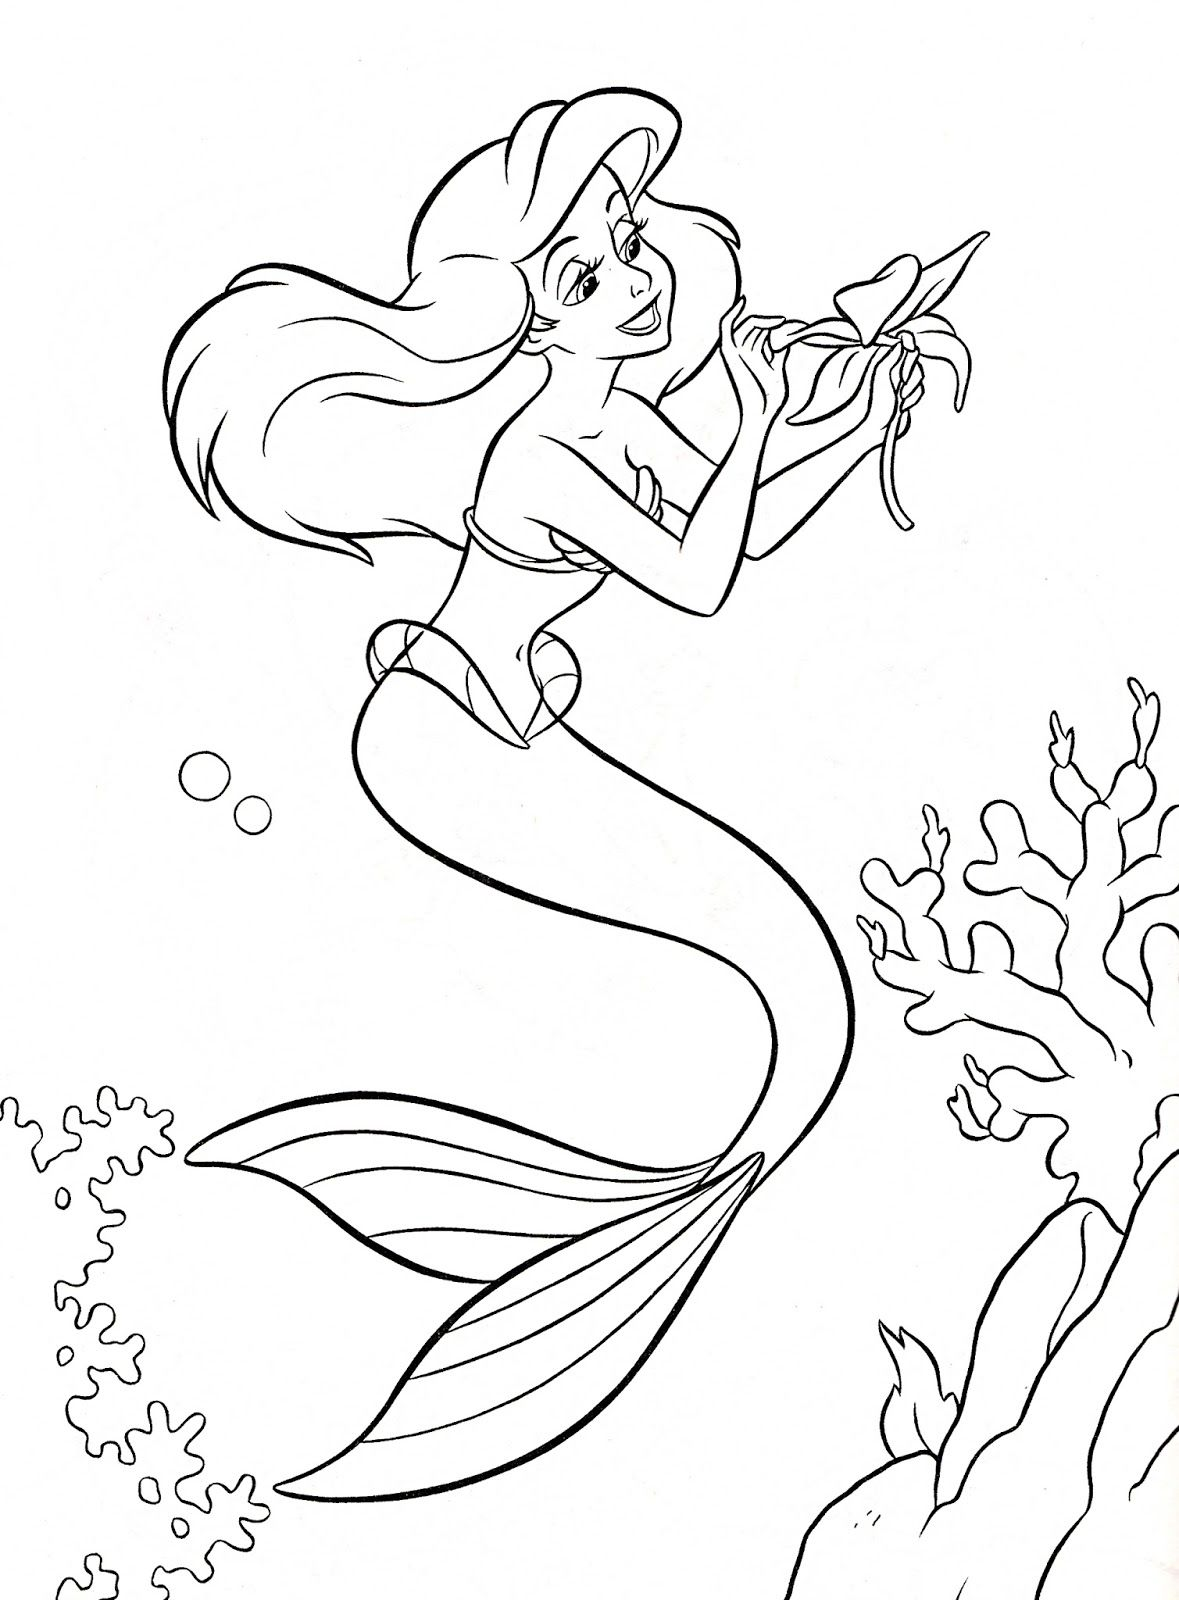 Disney Coloring Pages The Little Mermaid Disney Coloring Page Disney Princess Coloring Pages Ariel Coloring Pages Princess Coloring Pages [ 1600 x 1179 Pixel ]